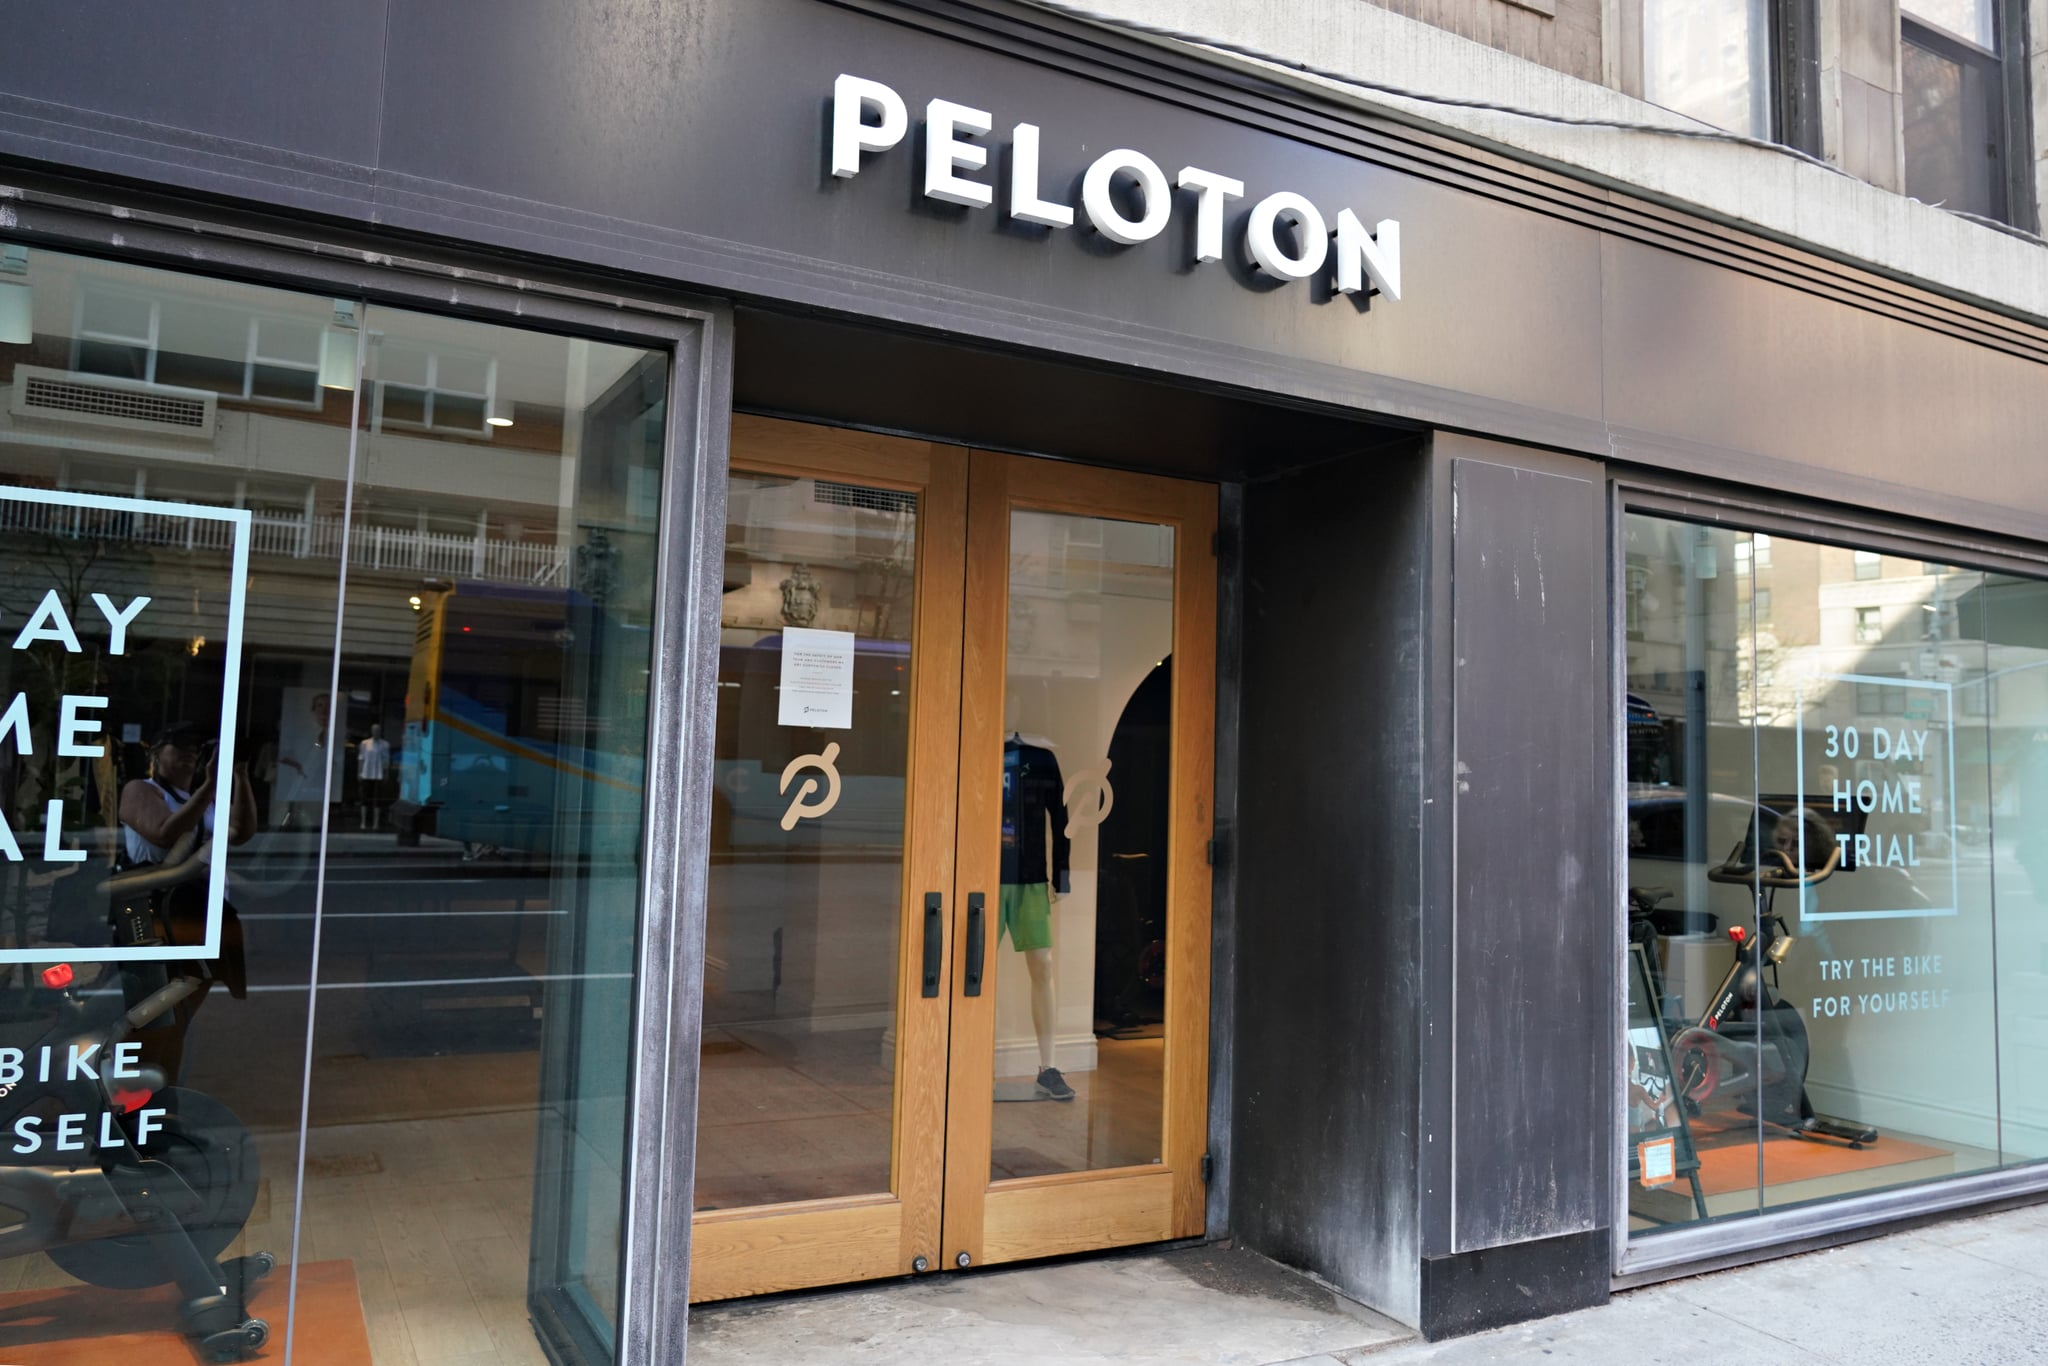 NEW YORK, NEW YORK - MARCH 20: A closed PELOTON store as the coronavirus continues to spread across the United States on March 20, 2020 in New York City. The World Health Organization declared coronavirus (COVID-19) a global pandemic on March 11th.  (Photo by Cindy Ord/Getty Images)